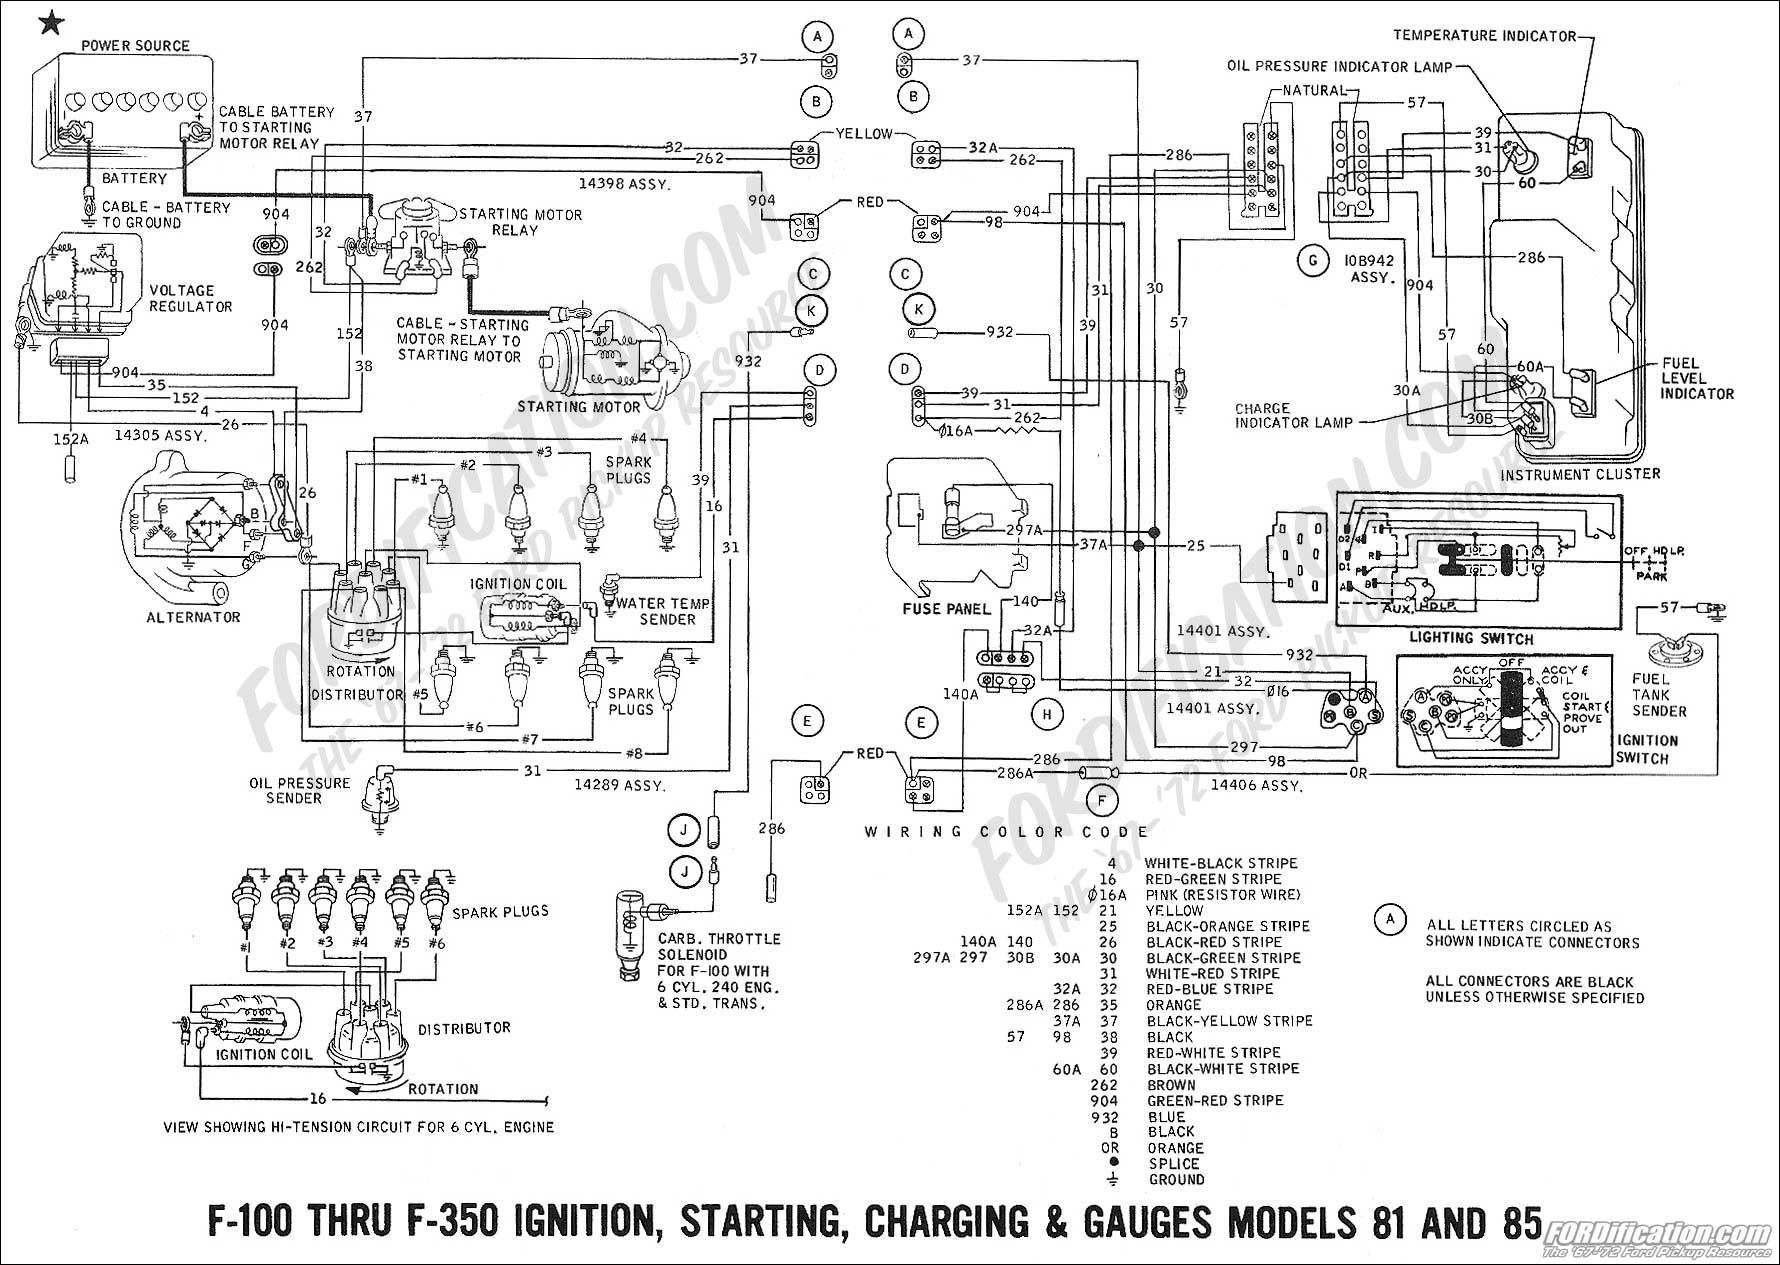 hight resolution of 1966 ford f100 alternator diagram wiring diagram inside66 ford alt diagram wiring diagram used 1966 ford